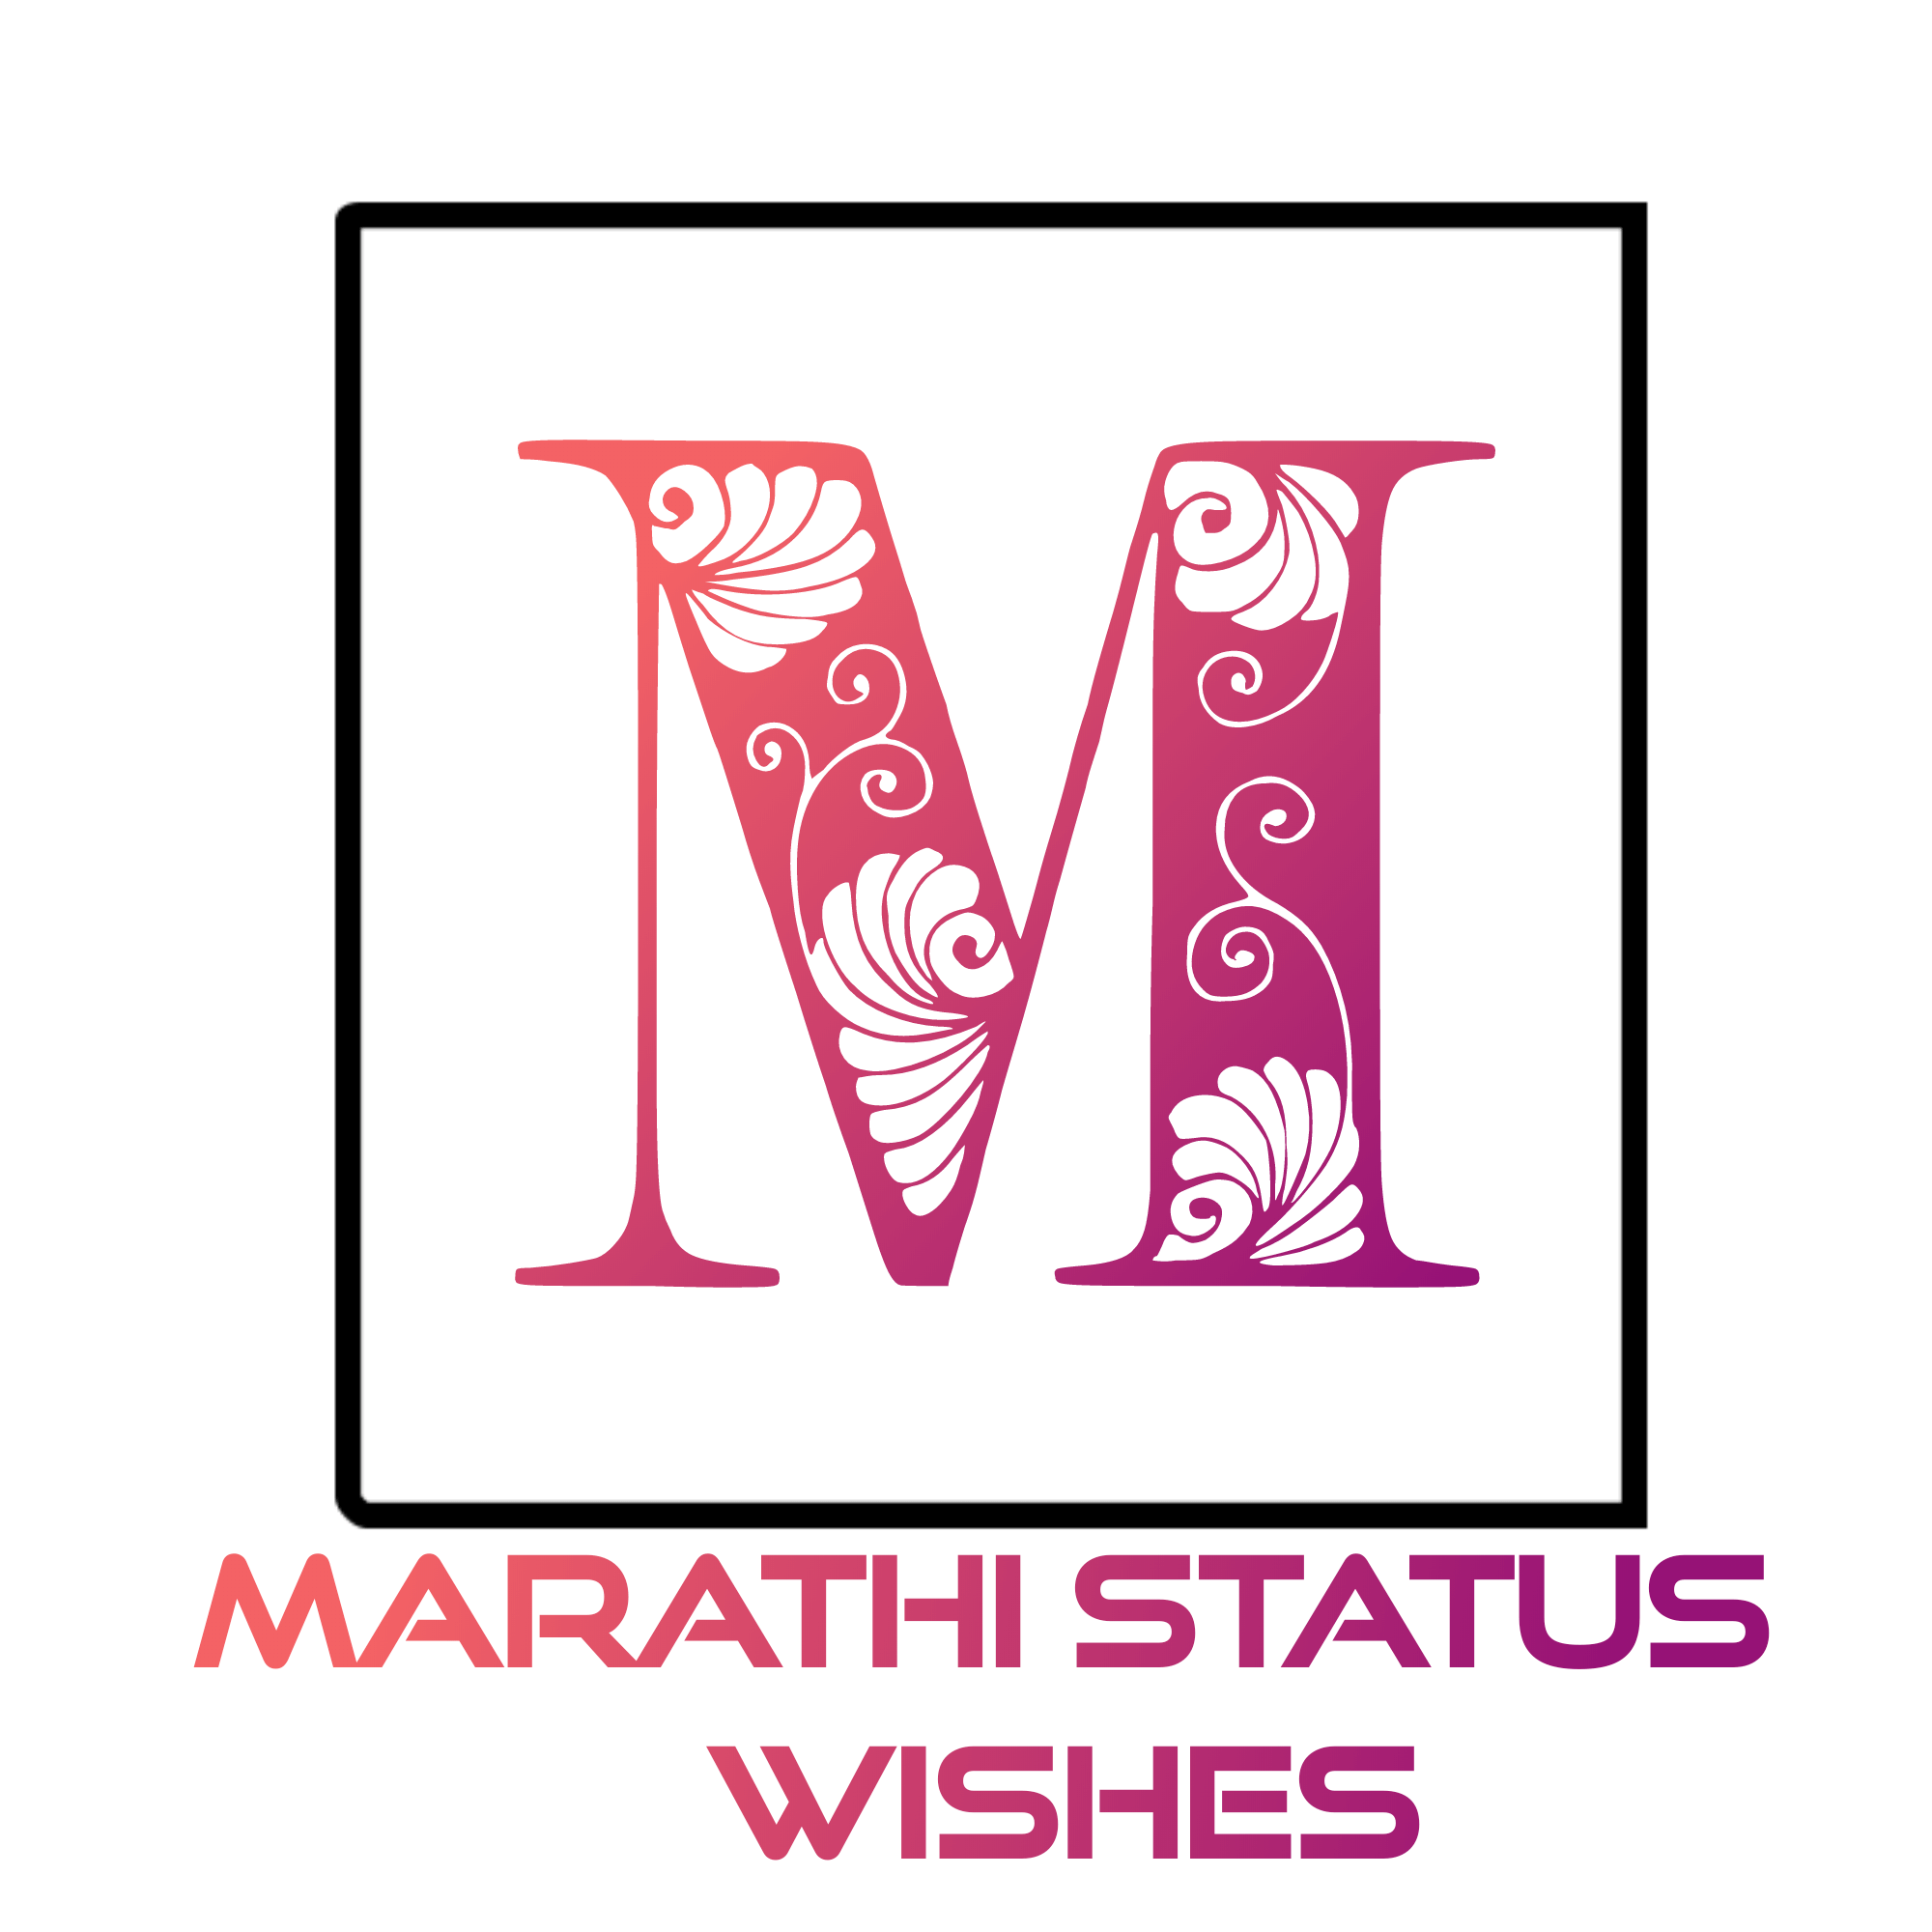 Marathi Status Wishes